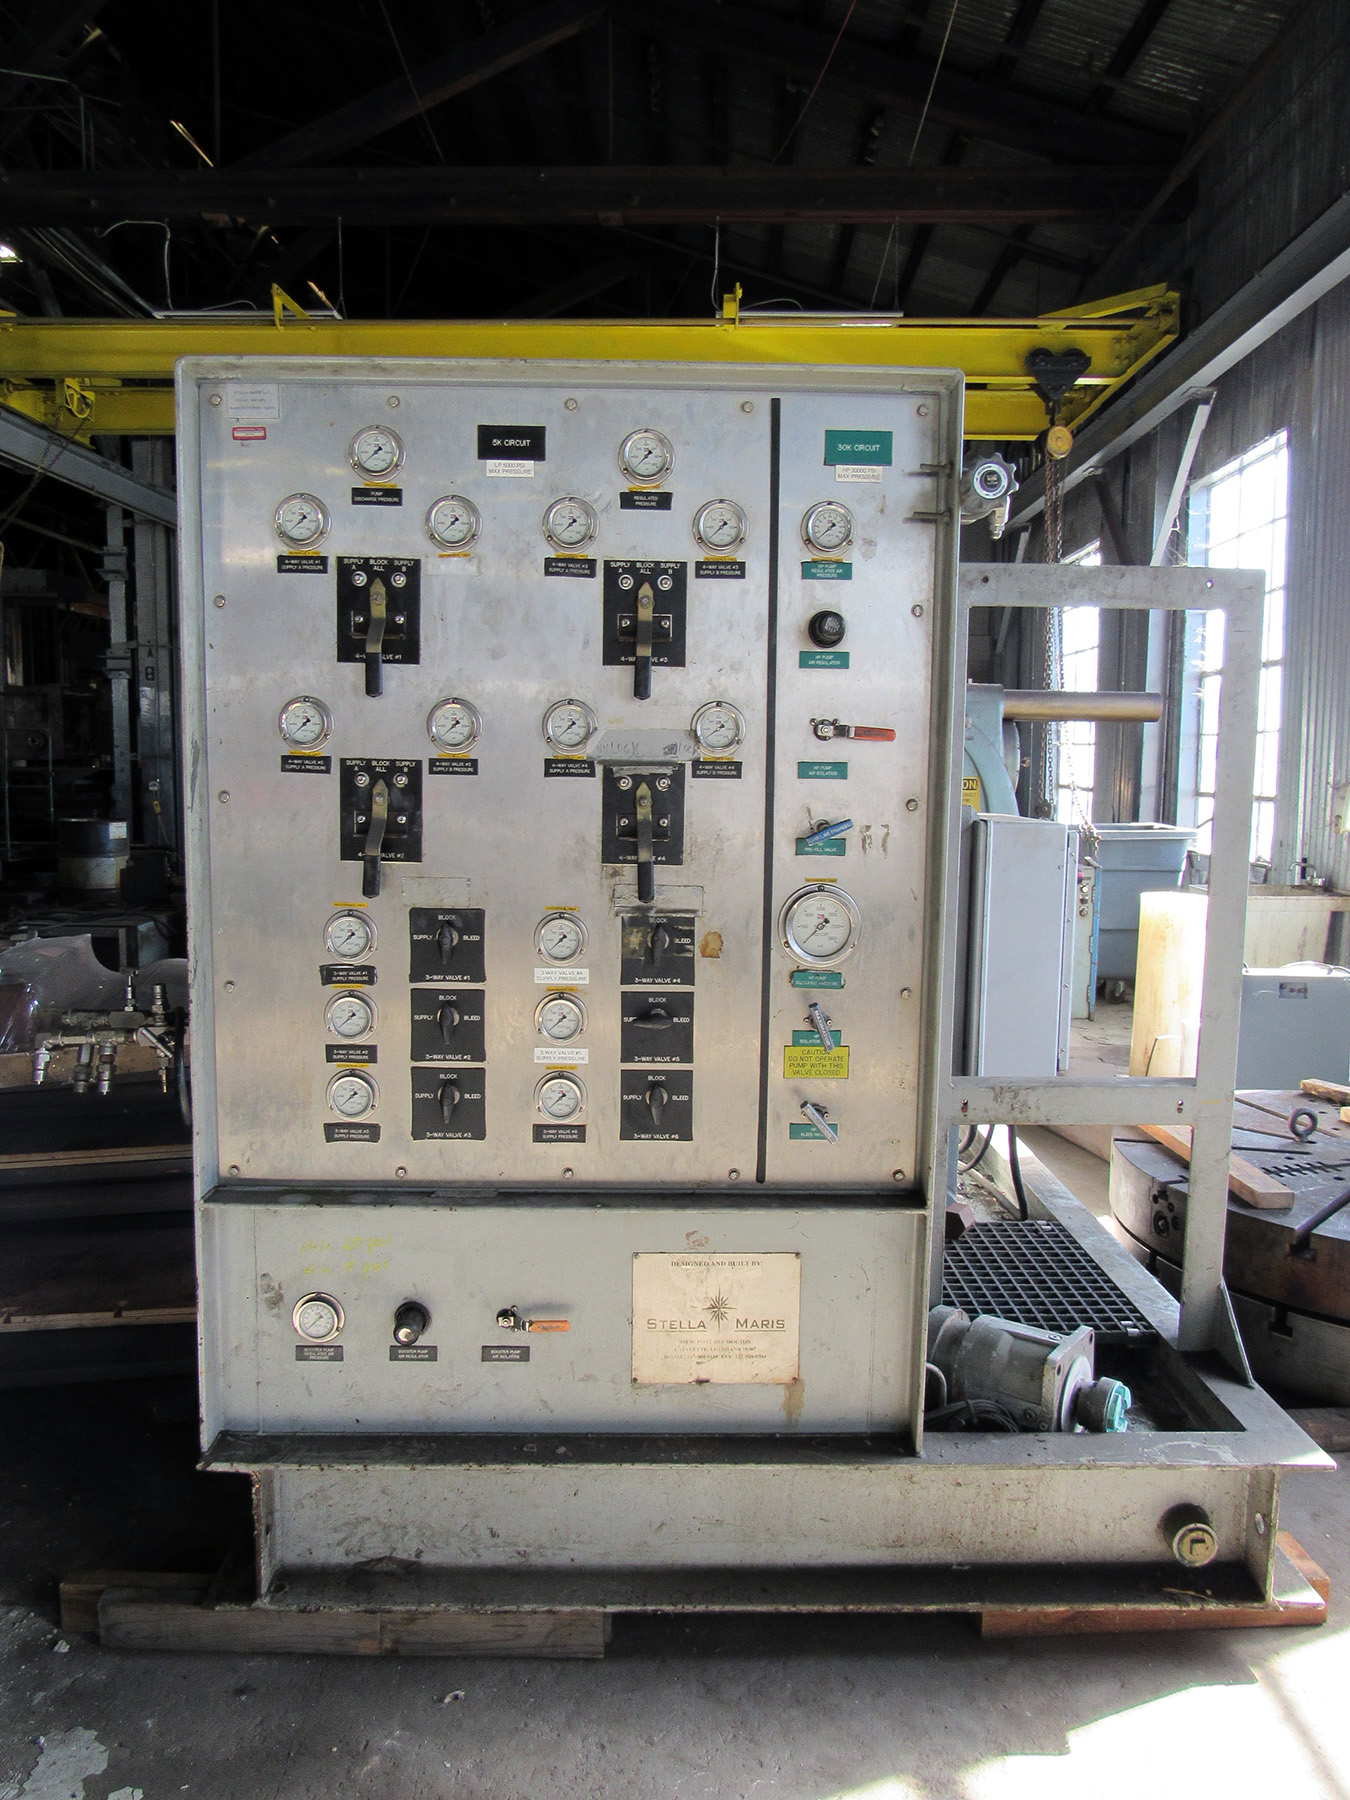 USED, 5K/30K STELLA MARIS HYDRAULIC POWER UNIT FOR PRESSURE TESTING